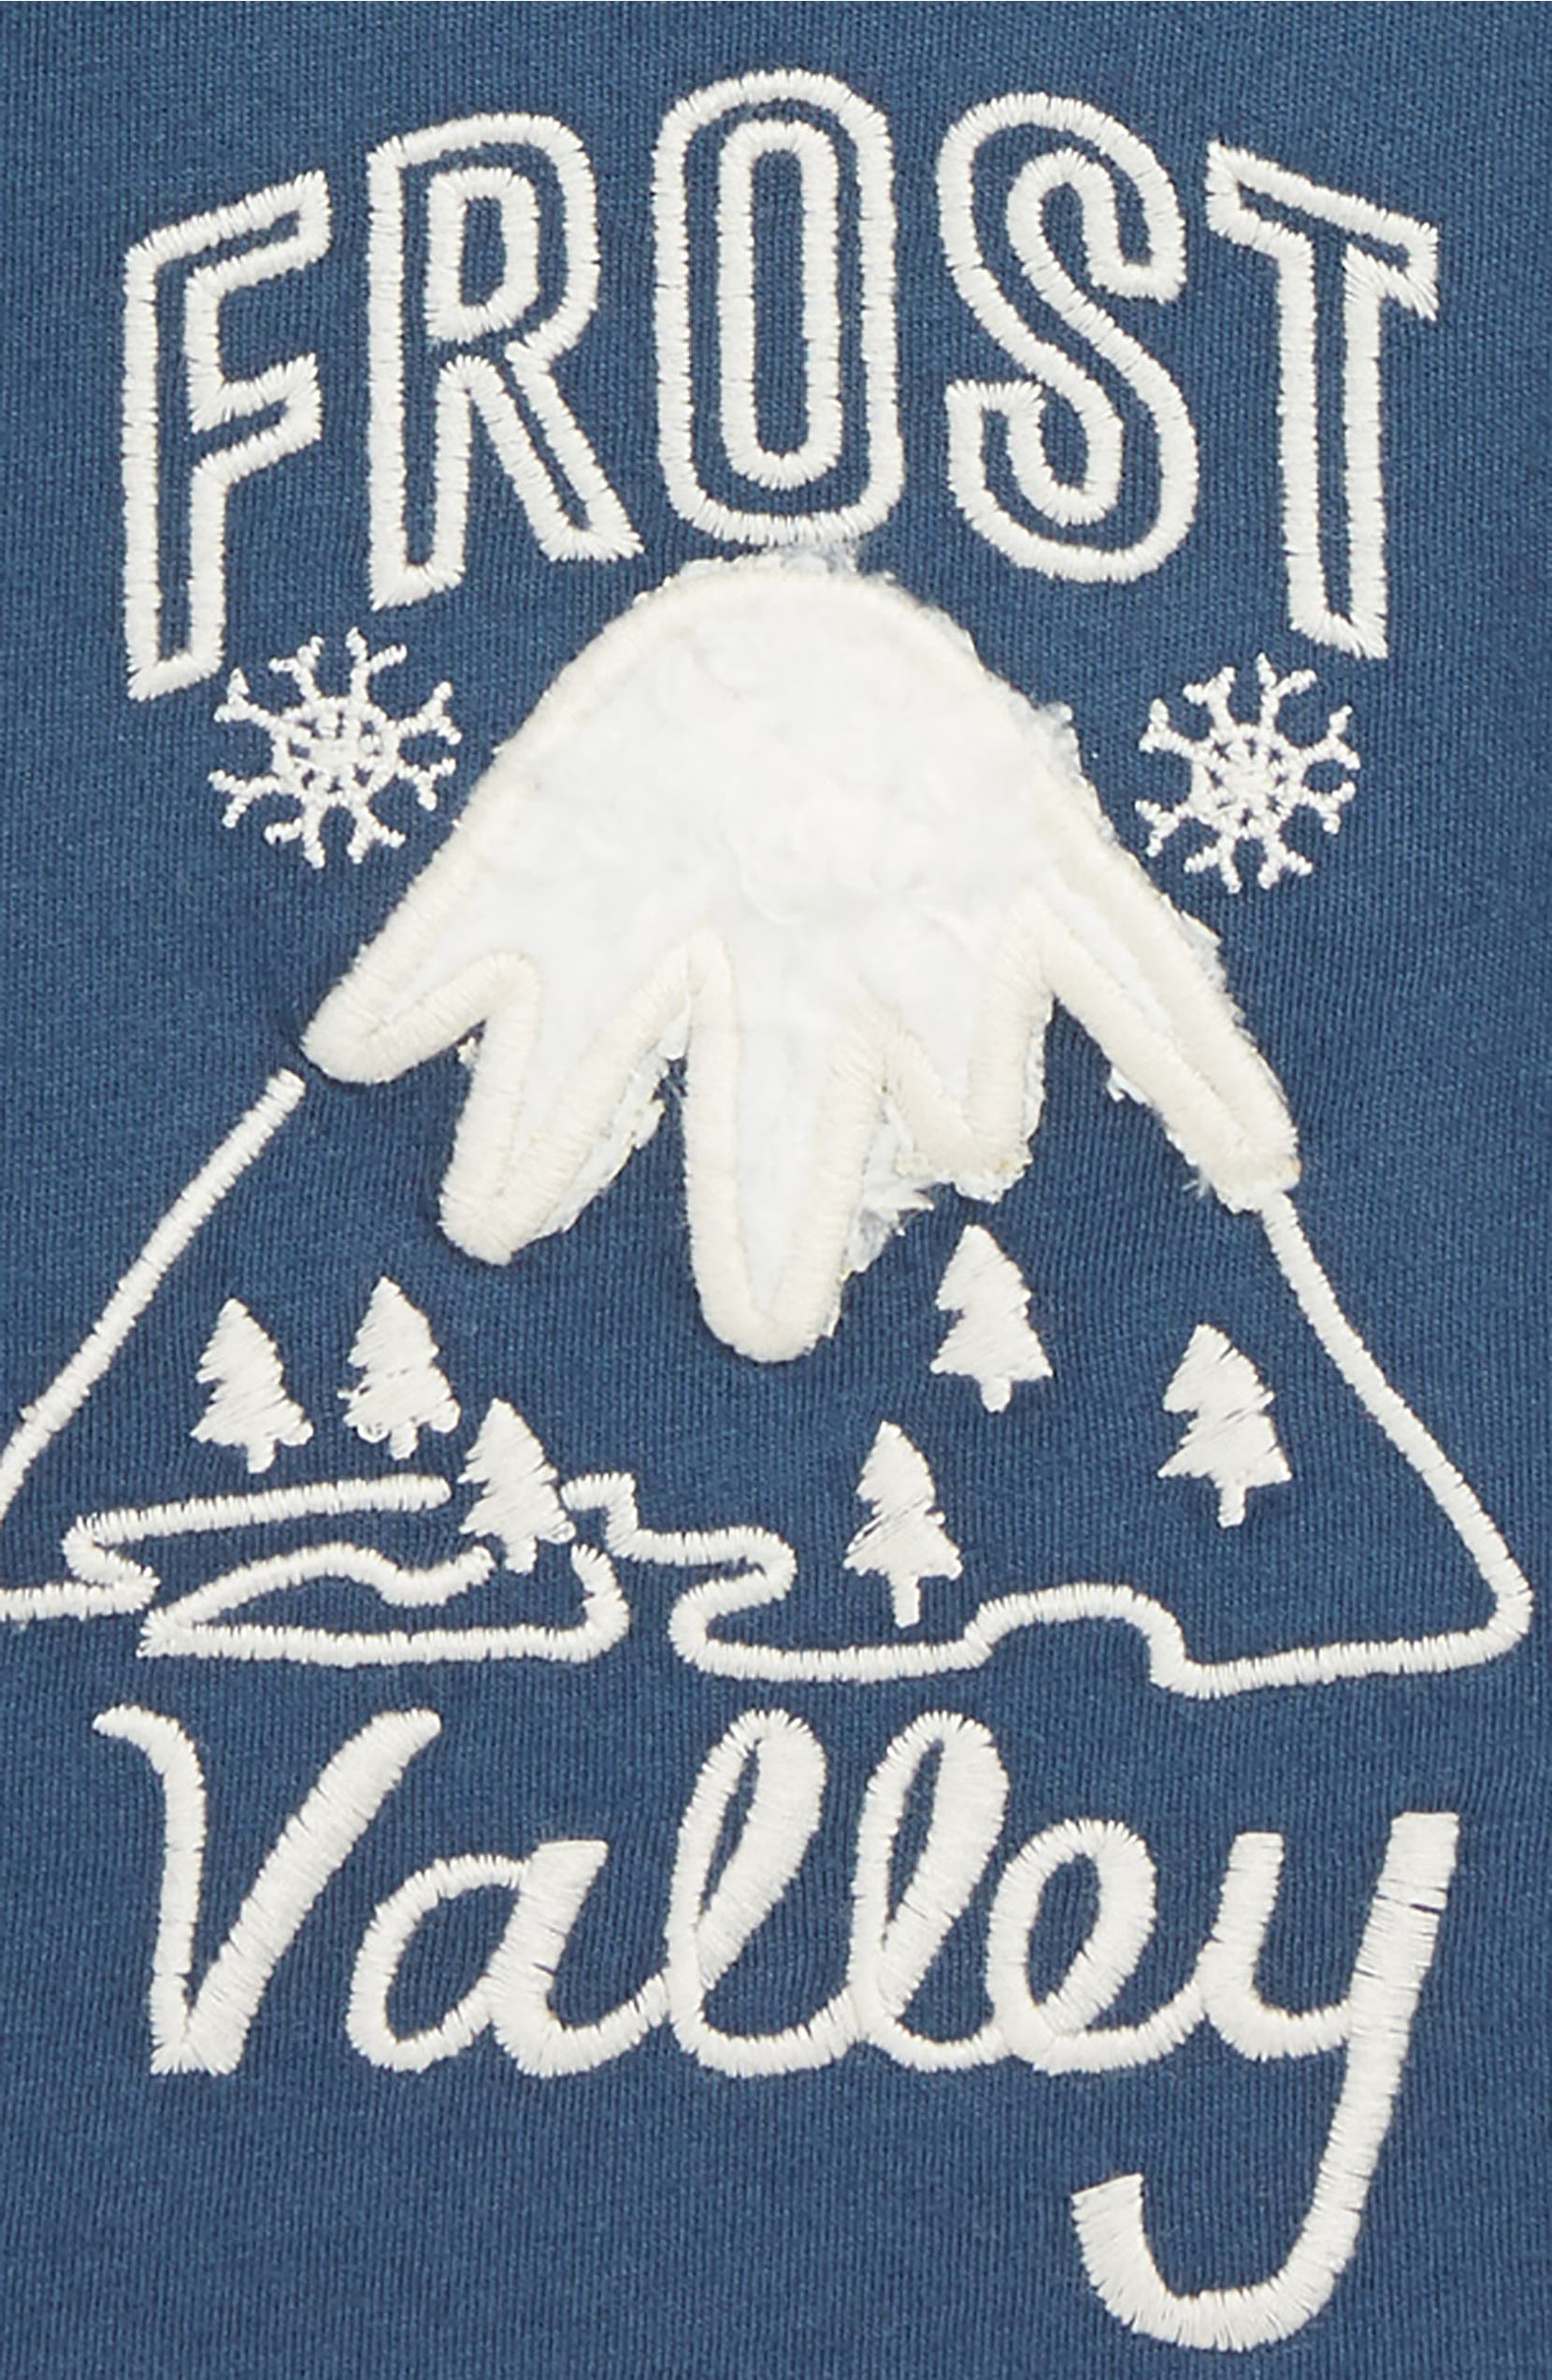 cabd3a4705 Tucker + Tate Frost Valley Long Sleeve T-Shirt (Baby)